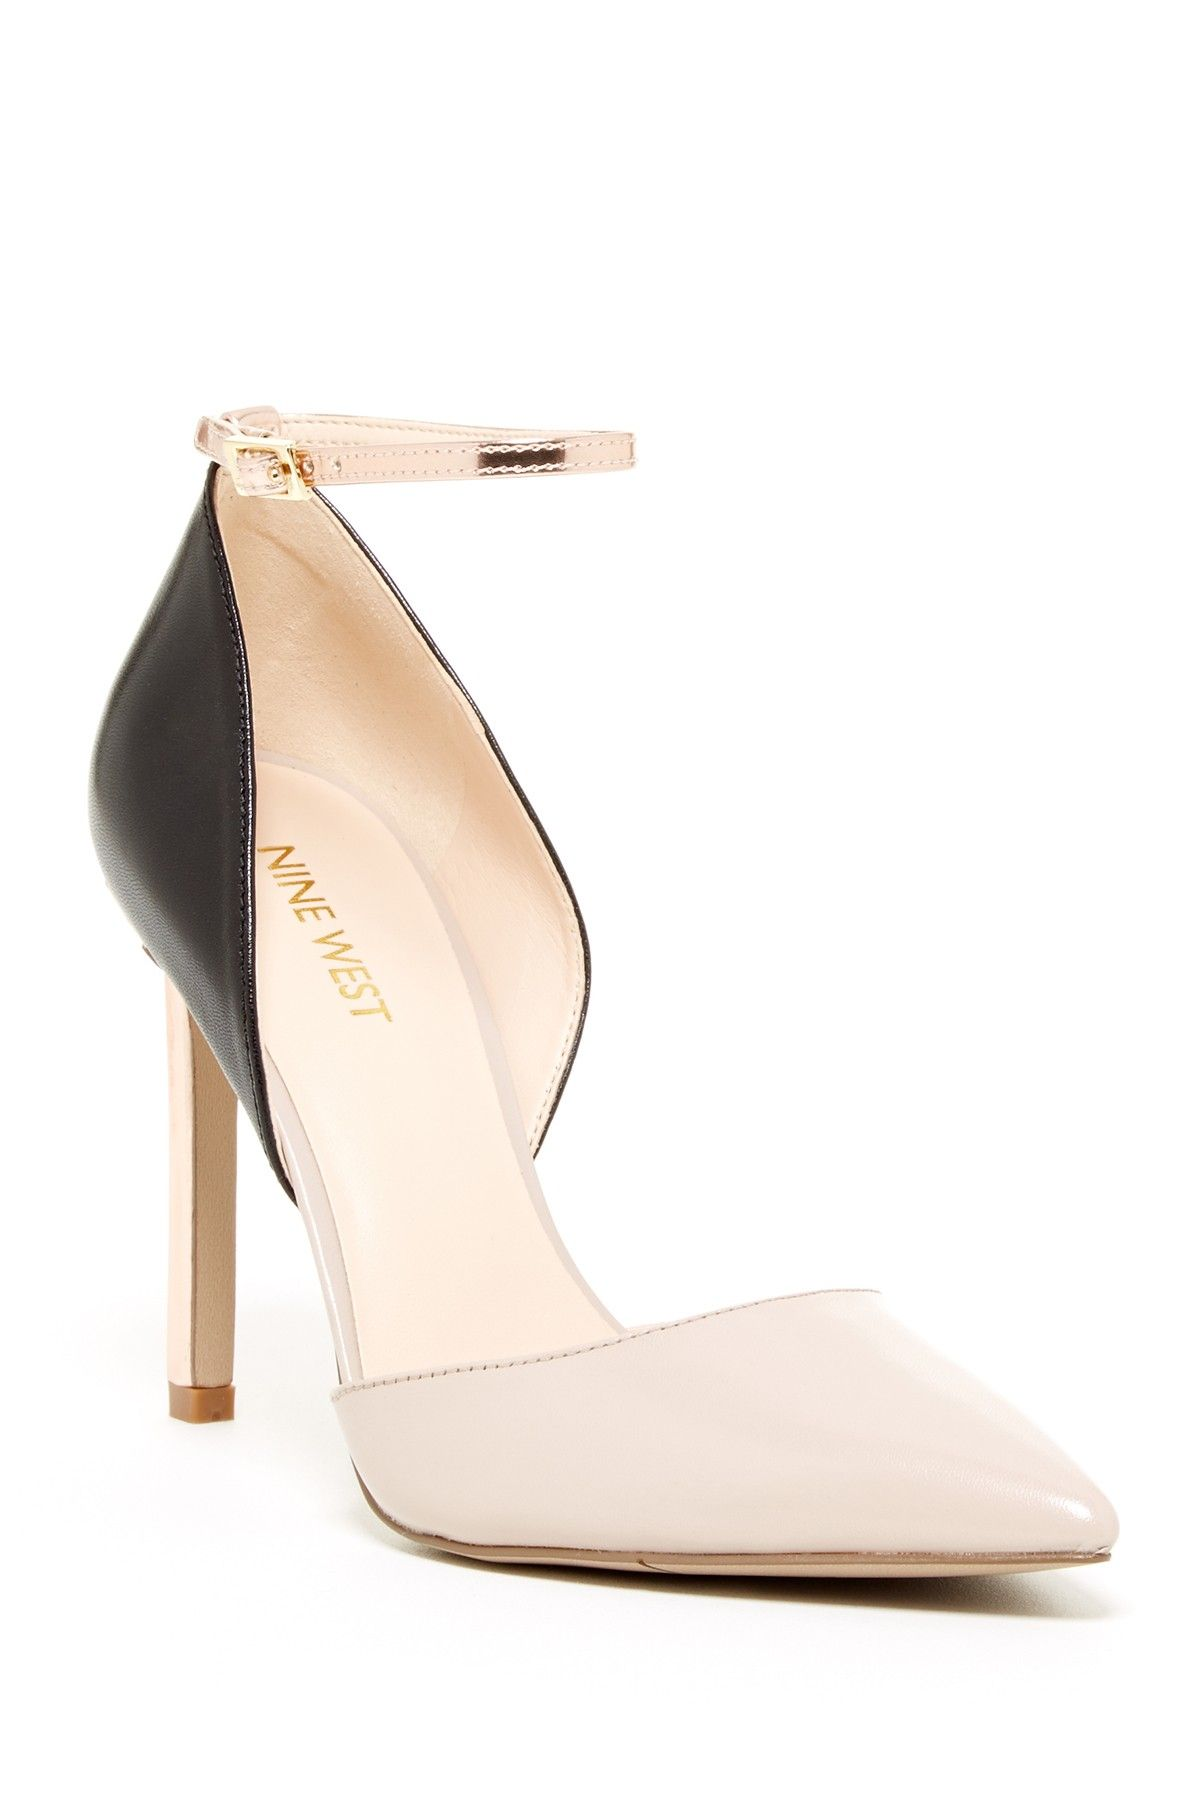 Nine West | Timeforsho d'Orsay Pump | Nordstrom Rack